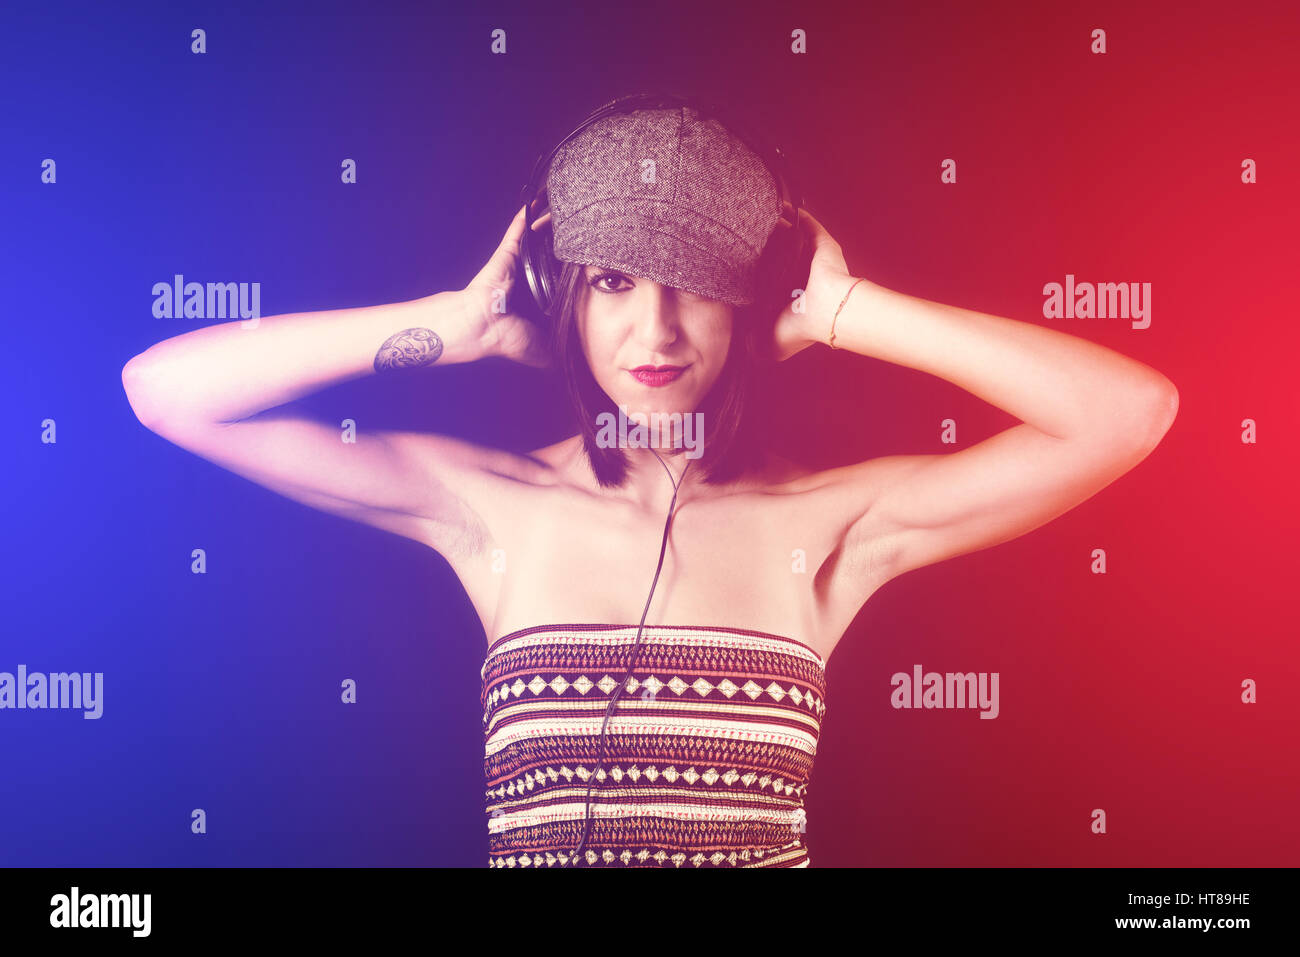 disco music woman dj - Stock Image